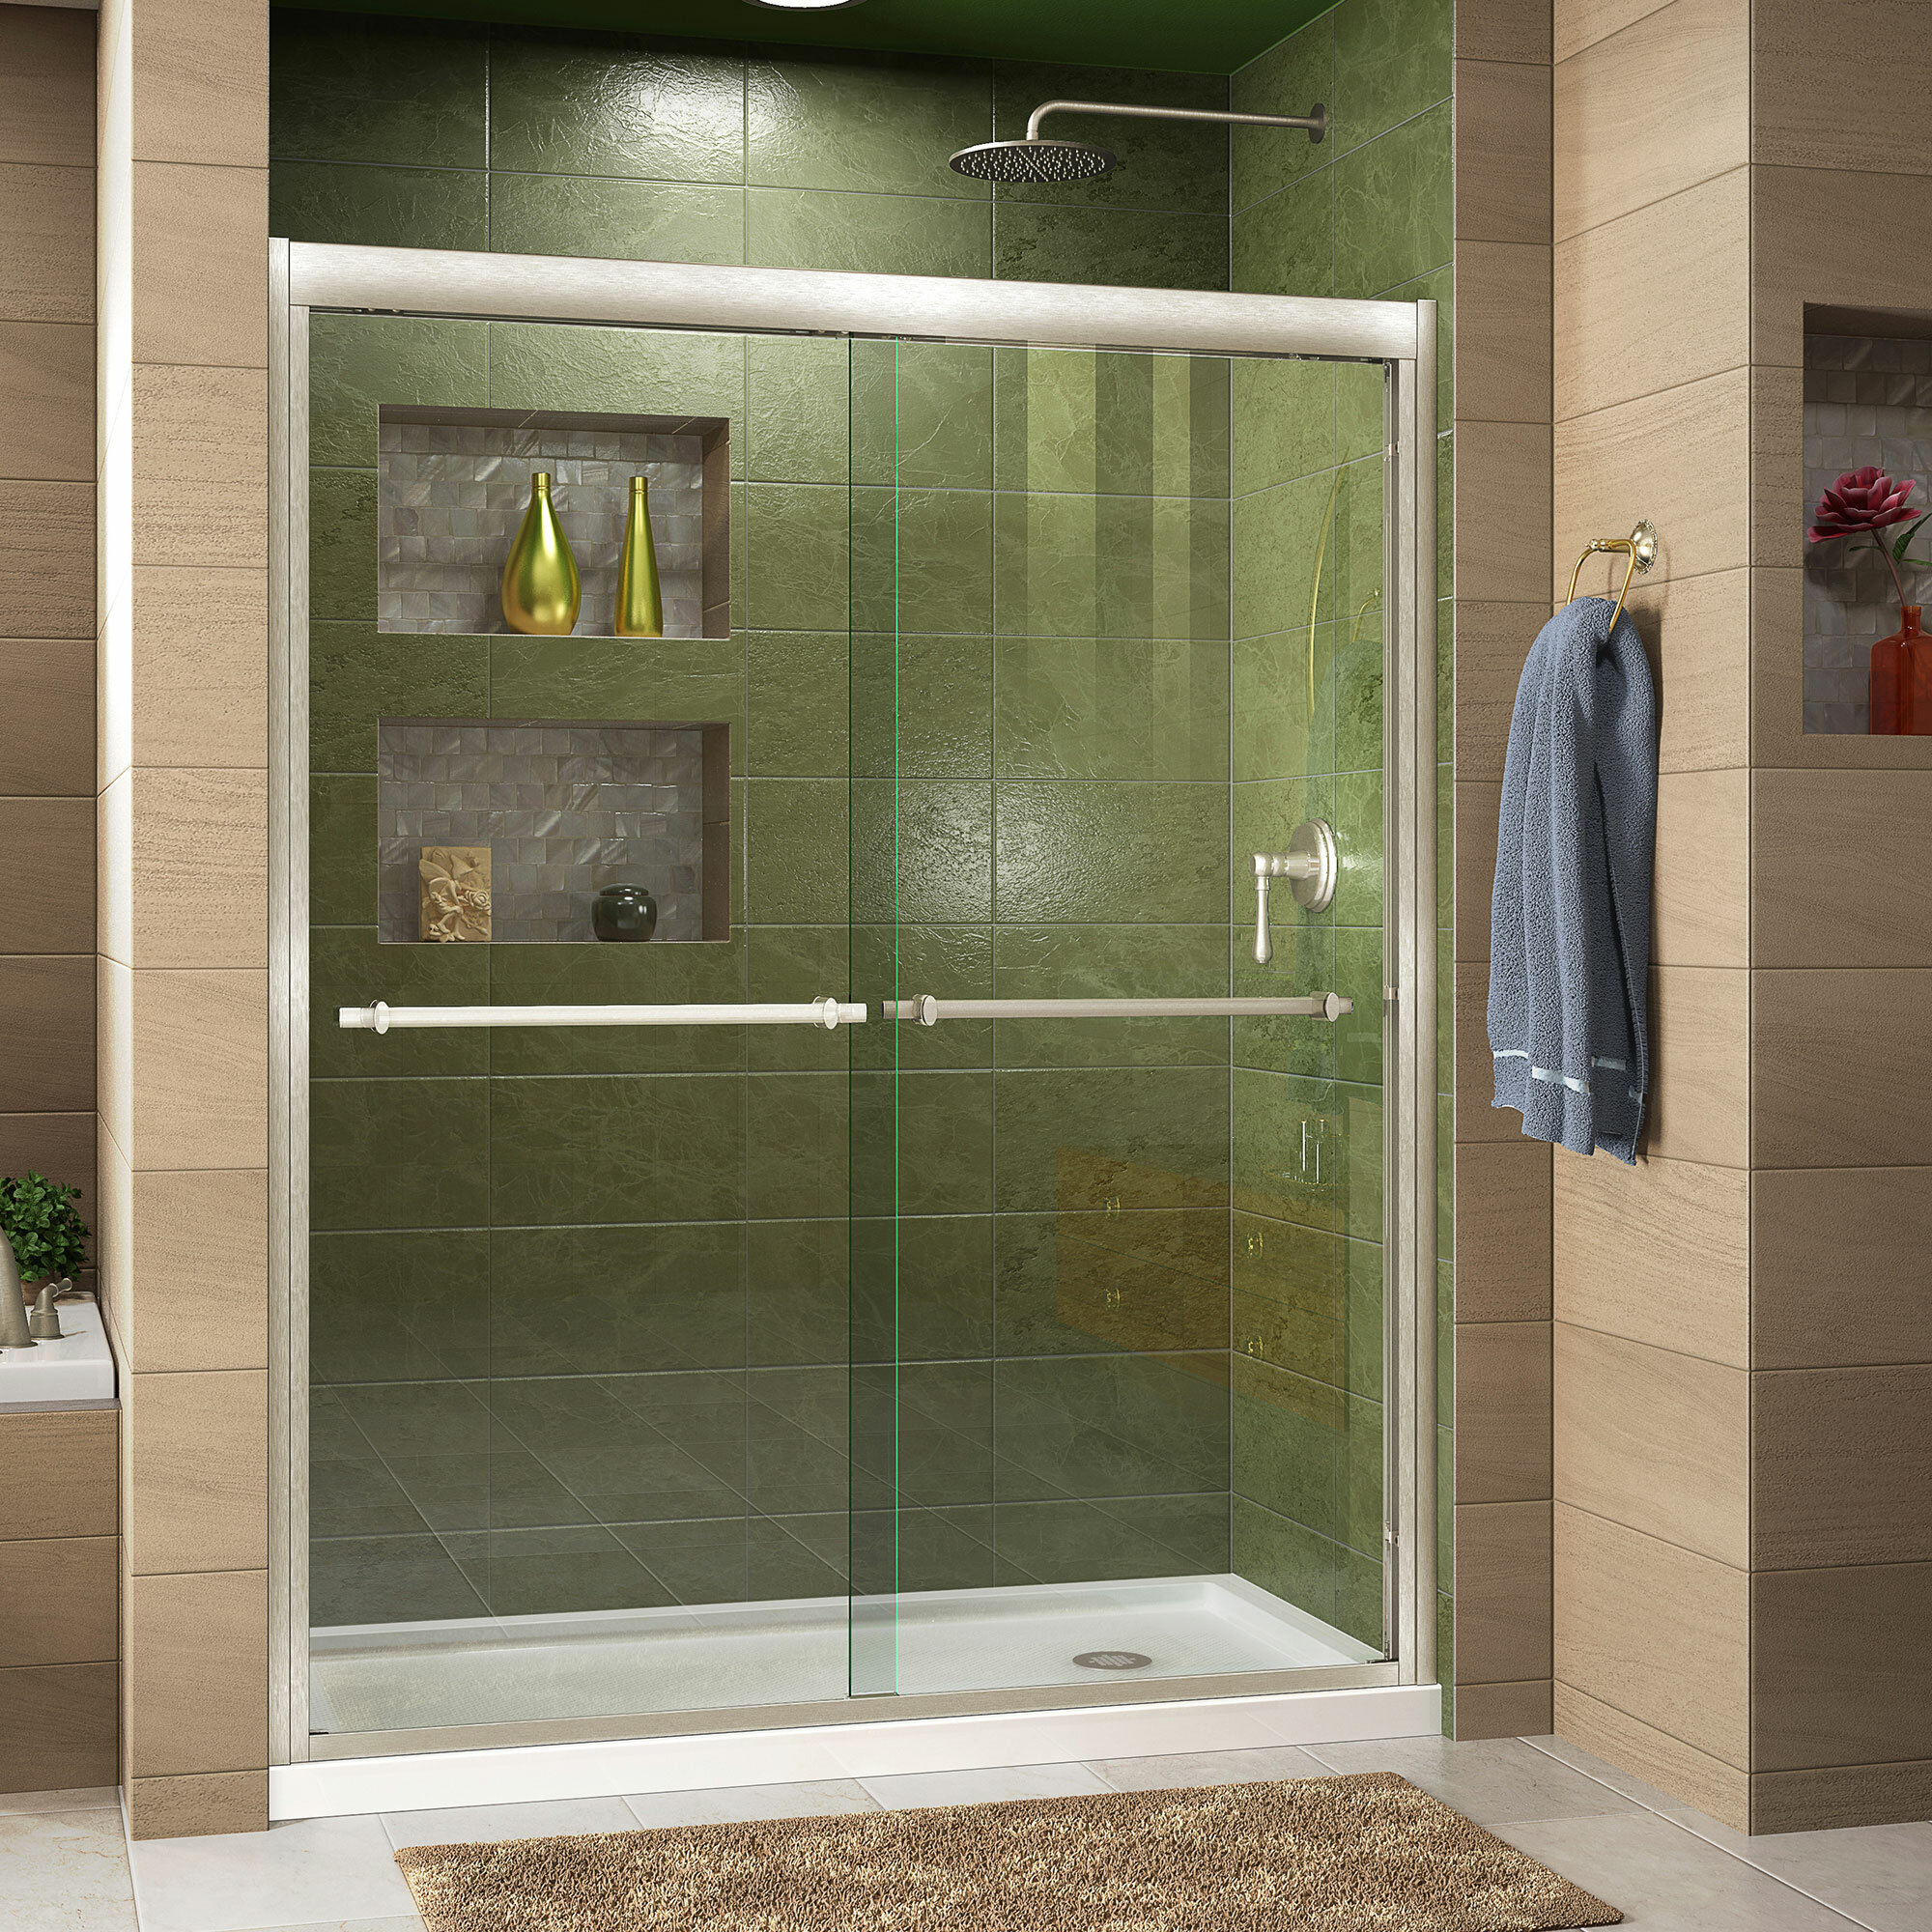 Dreamline Duet 48 X 7475 Bypass Semi Frameless Shower Door Wayfair